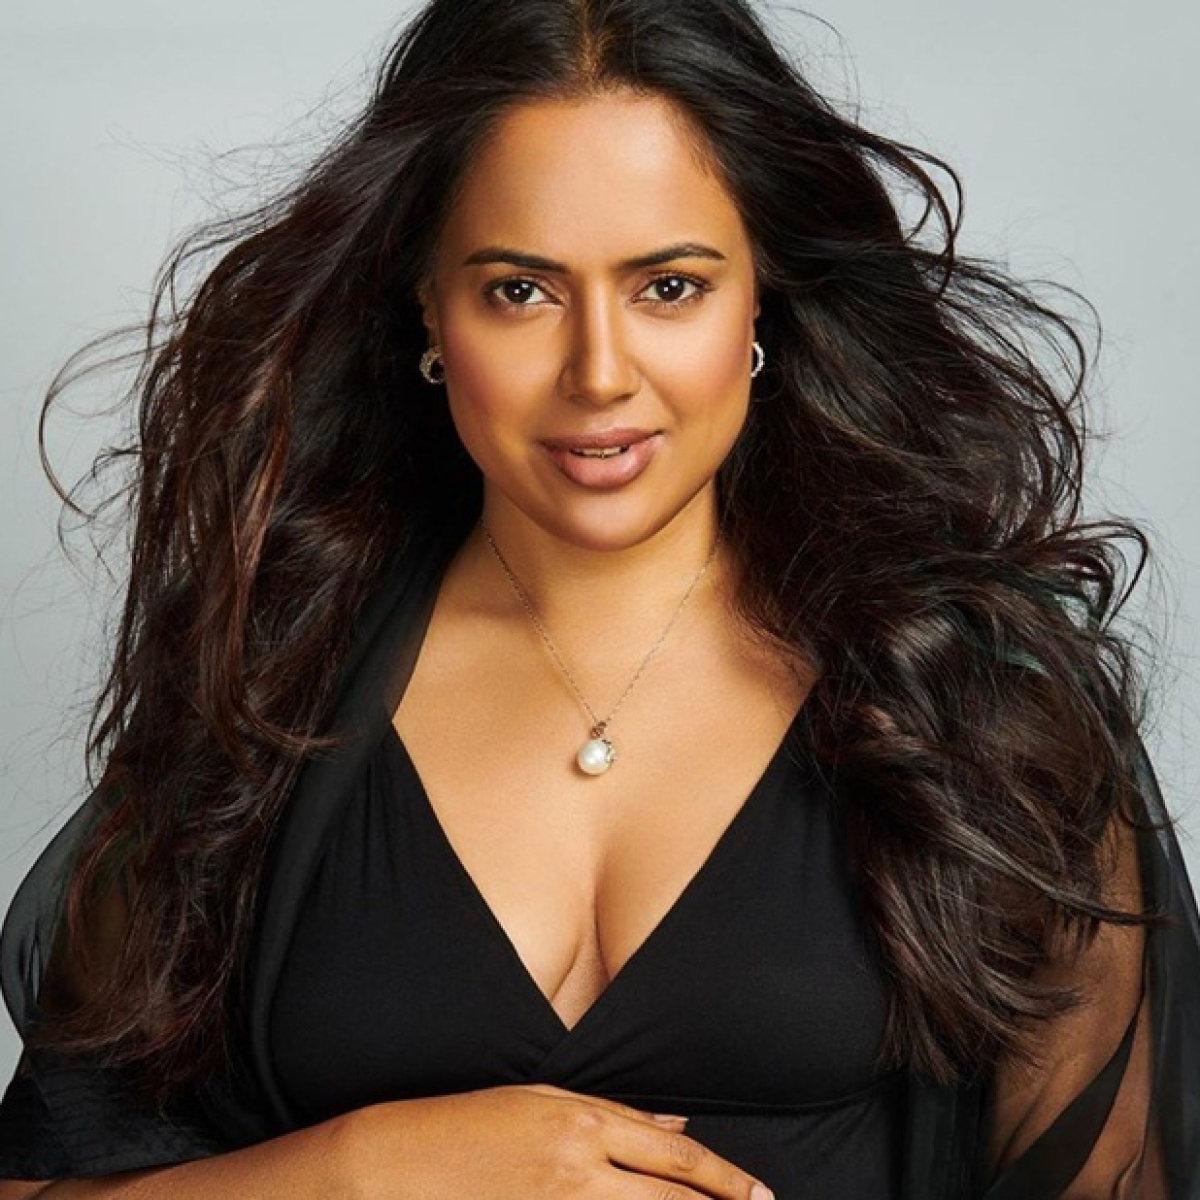 Sameera Reddy talks about her C-Section delivery for the 'Imperfectly Perfect Campaign'